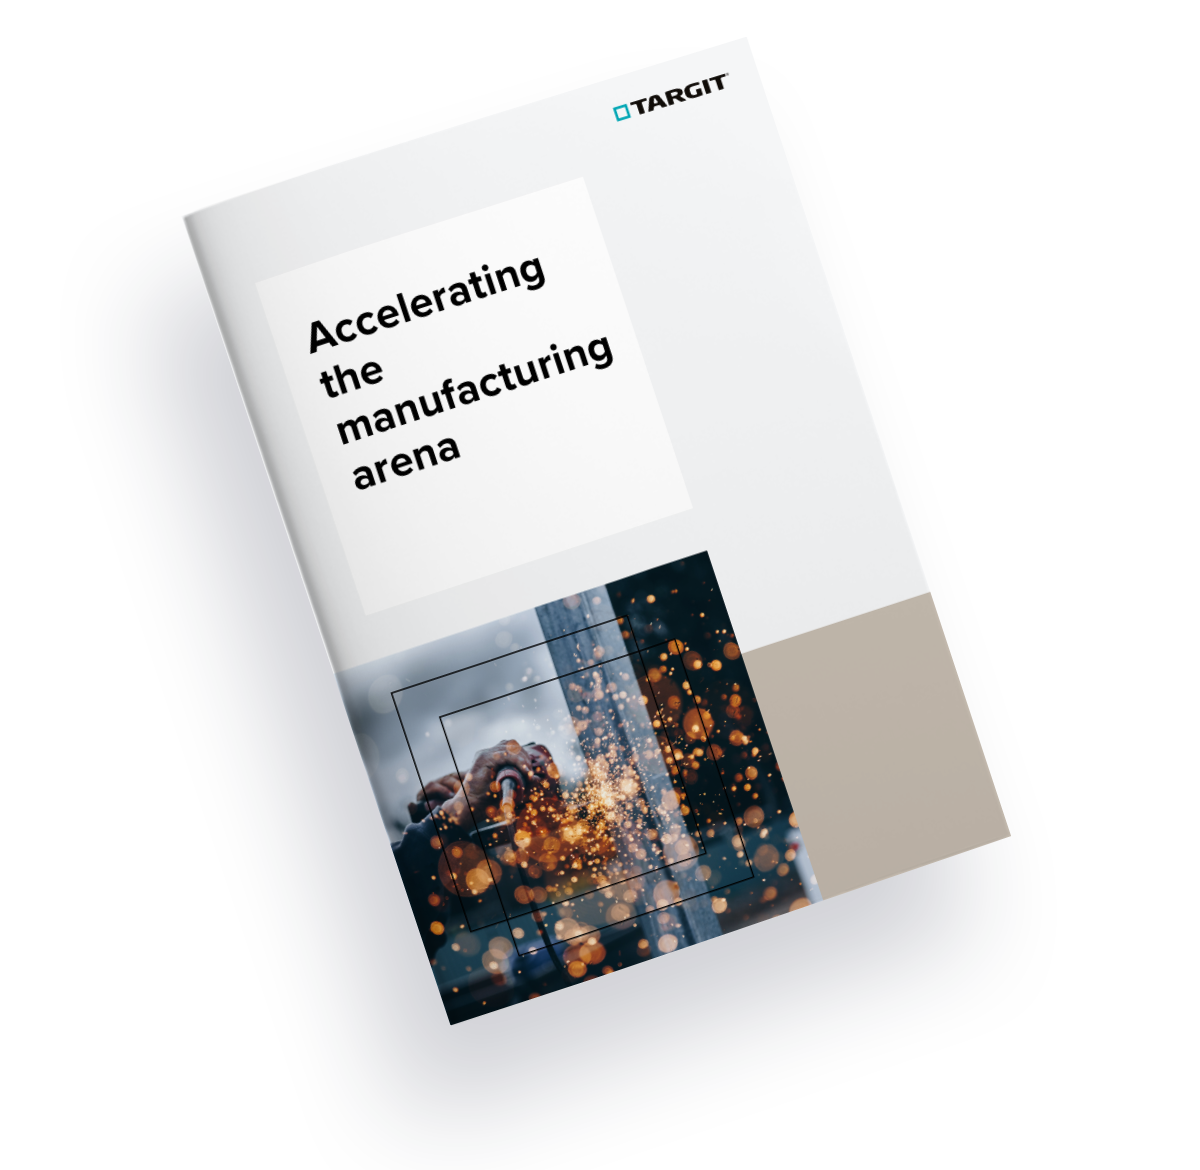 Accelerating the manufacturing arena cover